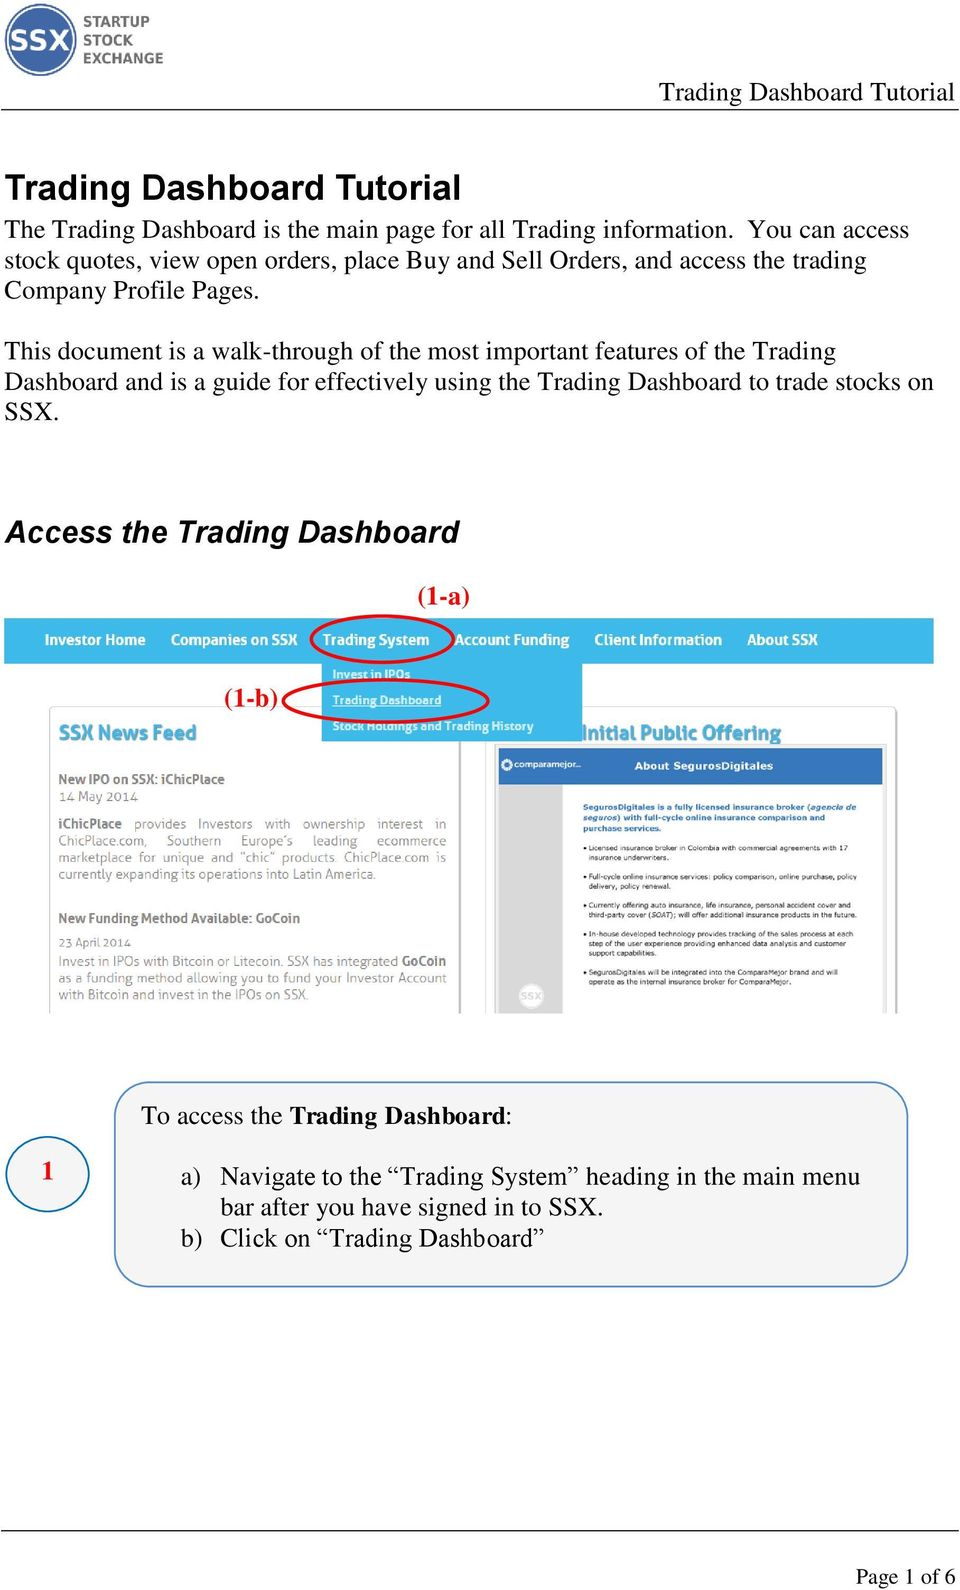 This document is a walk-through of the most important features of the Trading Dashboard and is a guide for effectively using the Trading Dashboard to